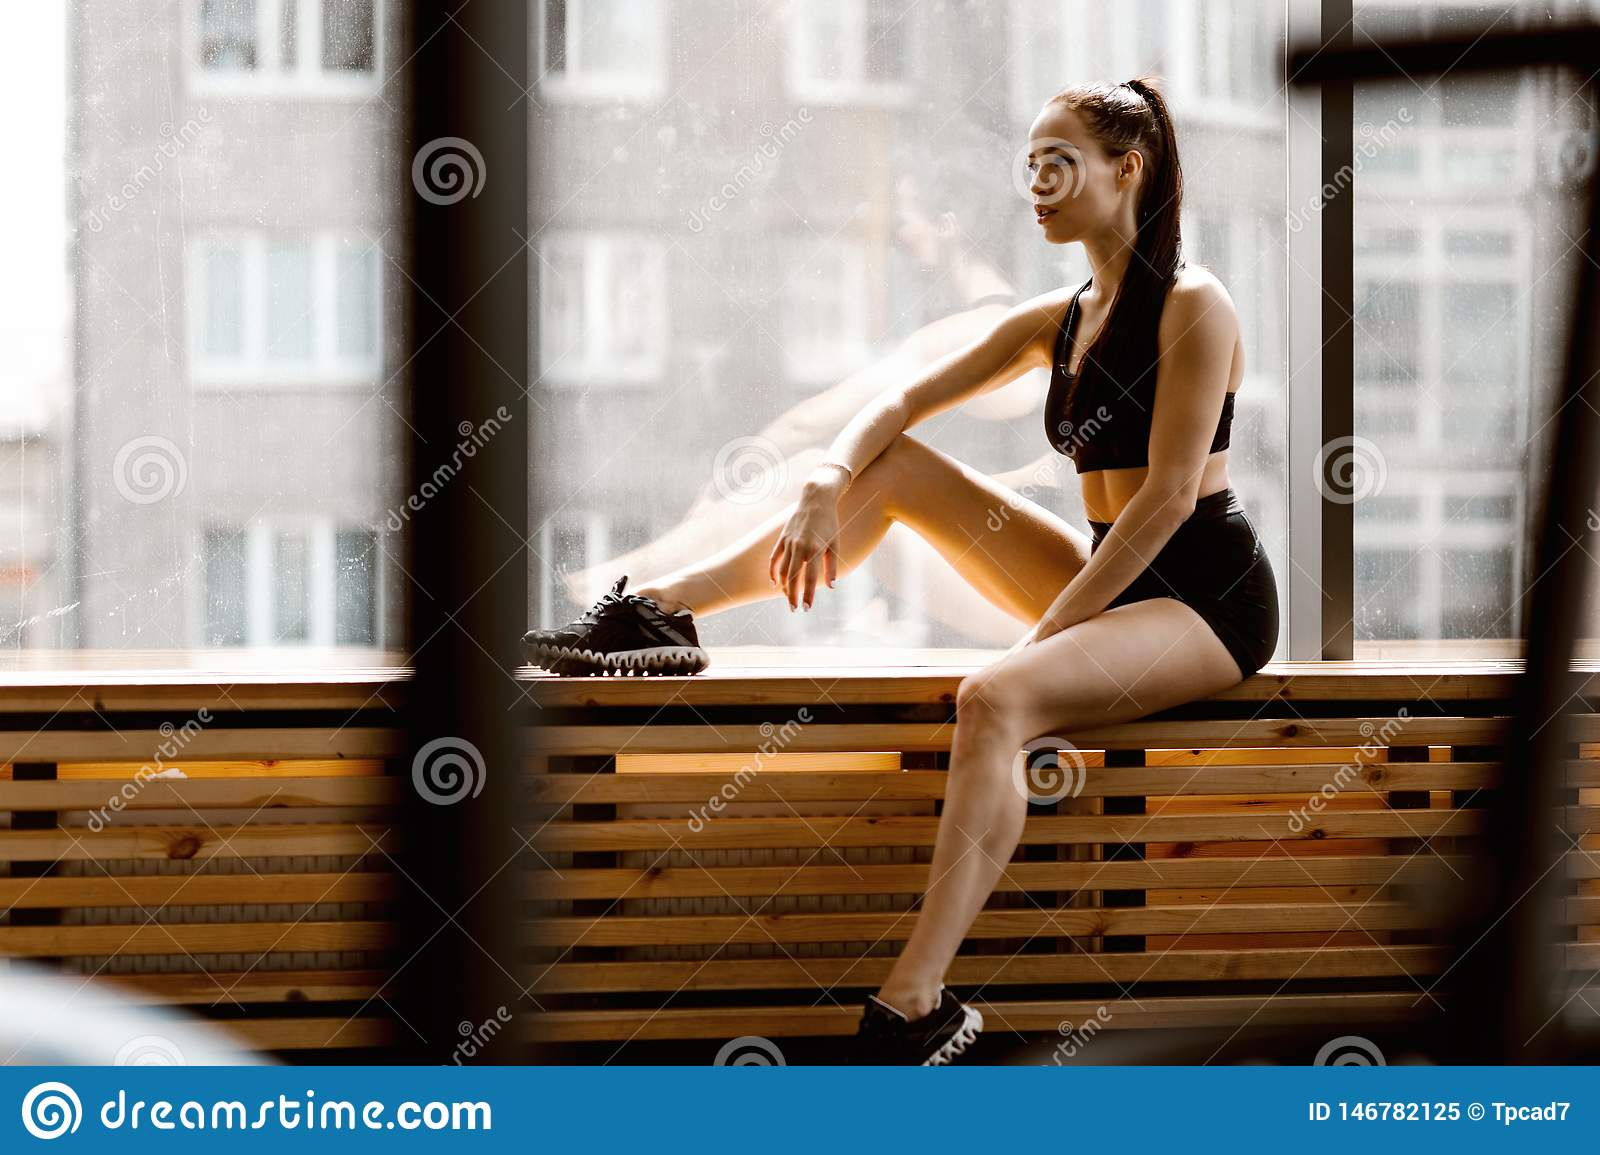 Athletic dark-haired girl dressed in black sports top and shorts is sitting on a wooden window sill in the gym